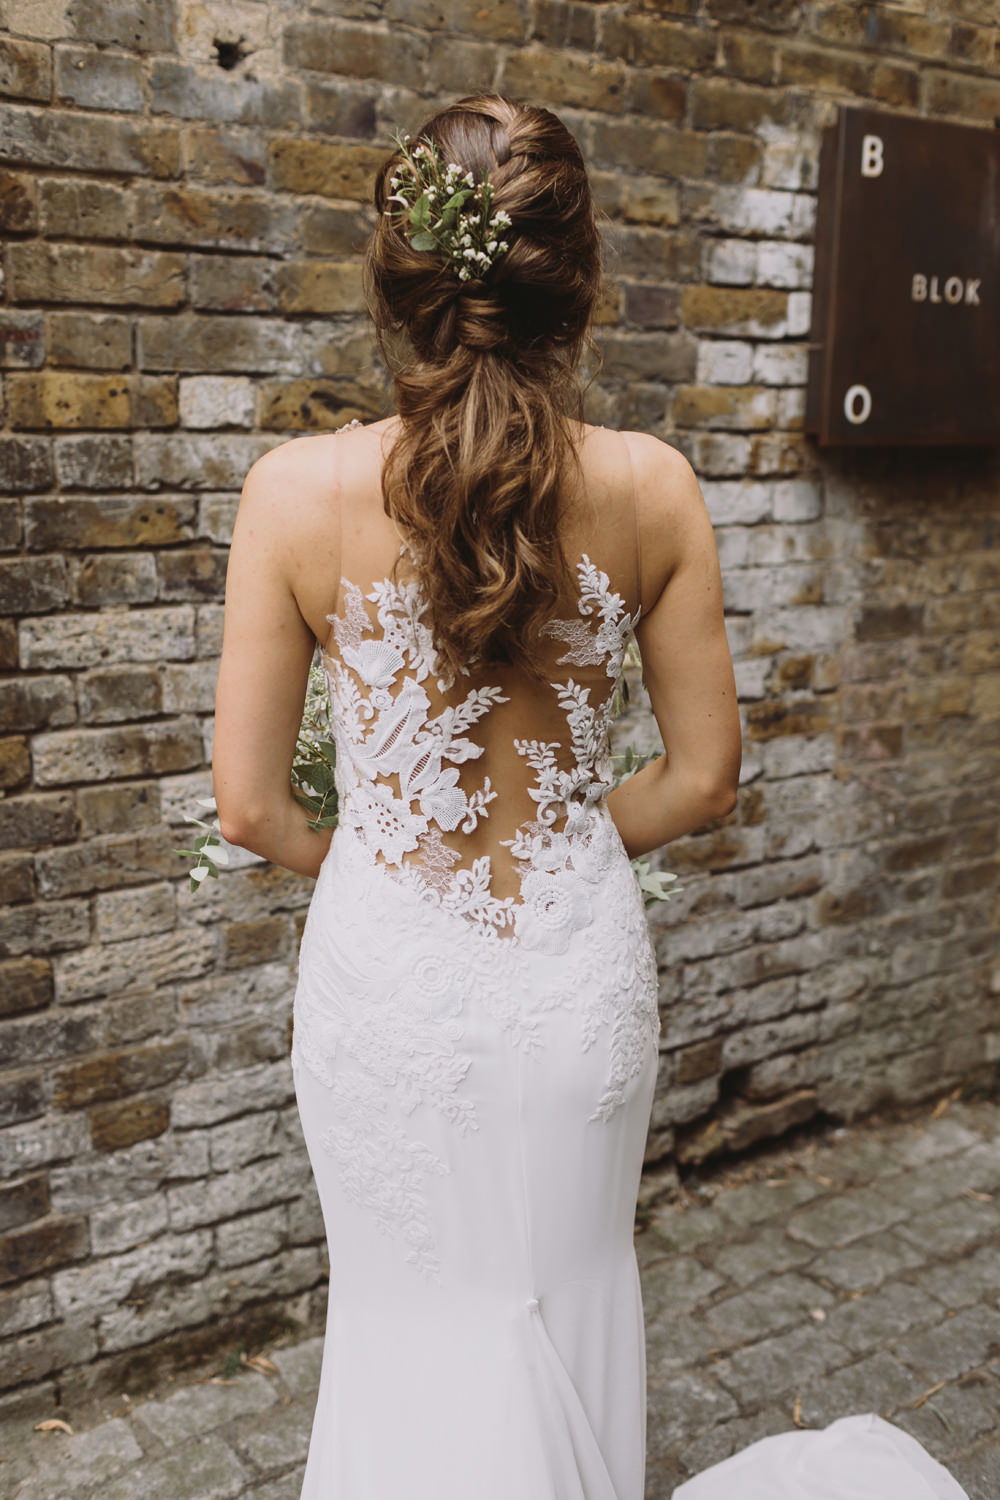 Bride Bridal Illusion Lace Back Dress Gown Pronovias Leaf Foliage Hair Up Do Tram House Wedding Luke Hayden Photography